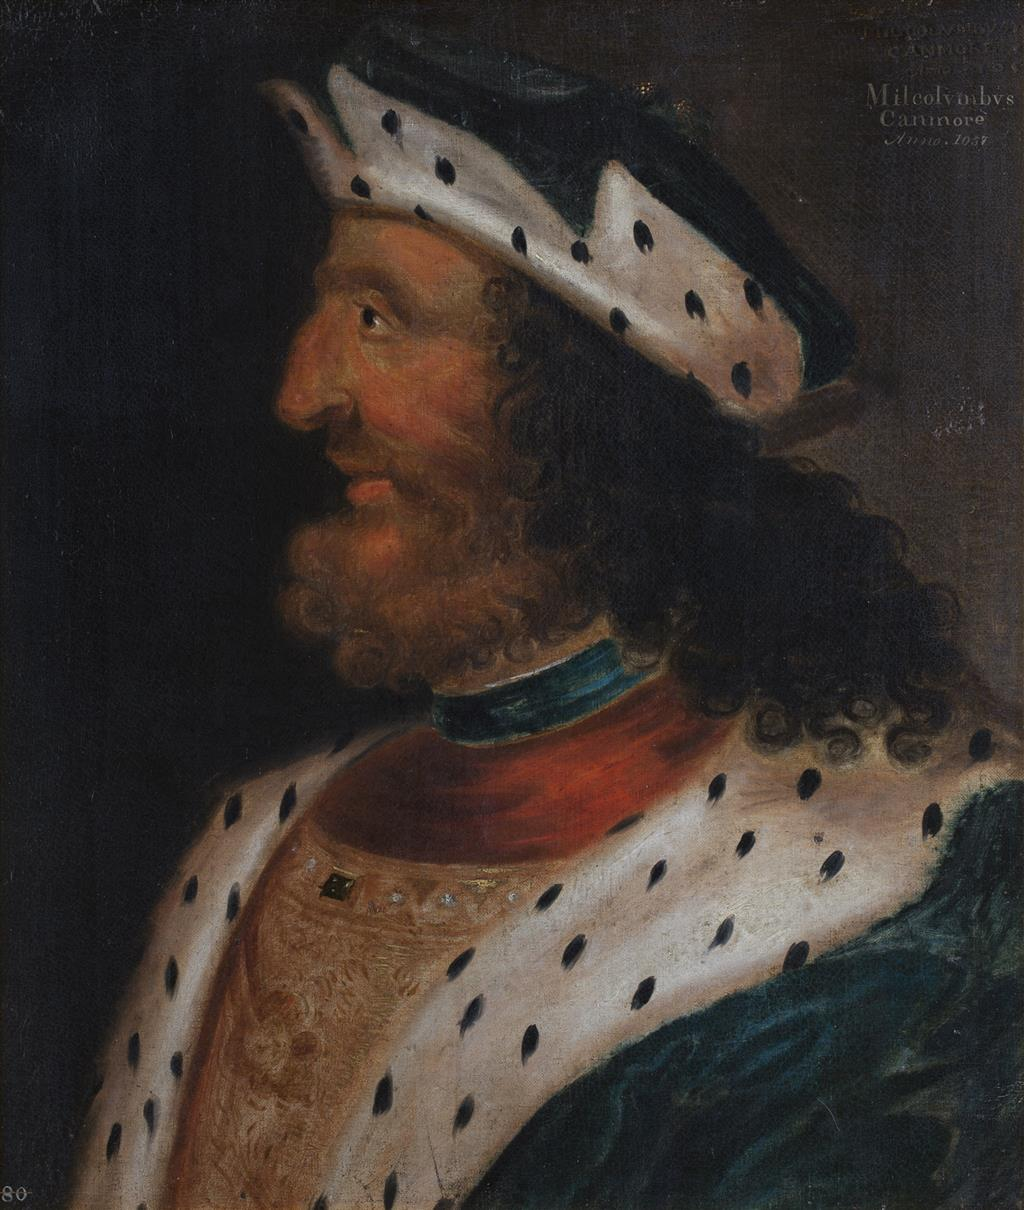 LOT 7   GEORGE JAMESONE (SCOTTISH C.1589-1644)   HEAD AND SHOULDER PORTRAIT OF MALCOLM III OF SCOTLAND  Inscribed twice 'Milcolumbus Canmore Anno 1057,' and numbered no.80' oil on canvas  £20,000-30,000